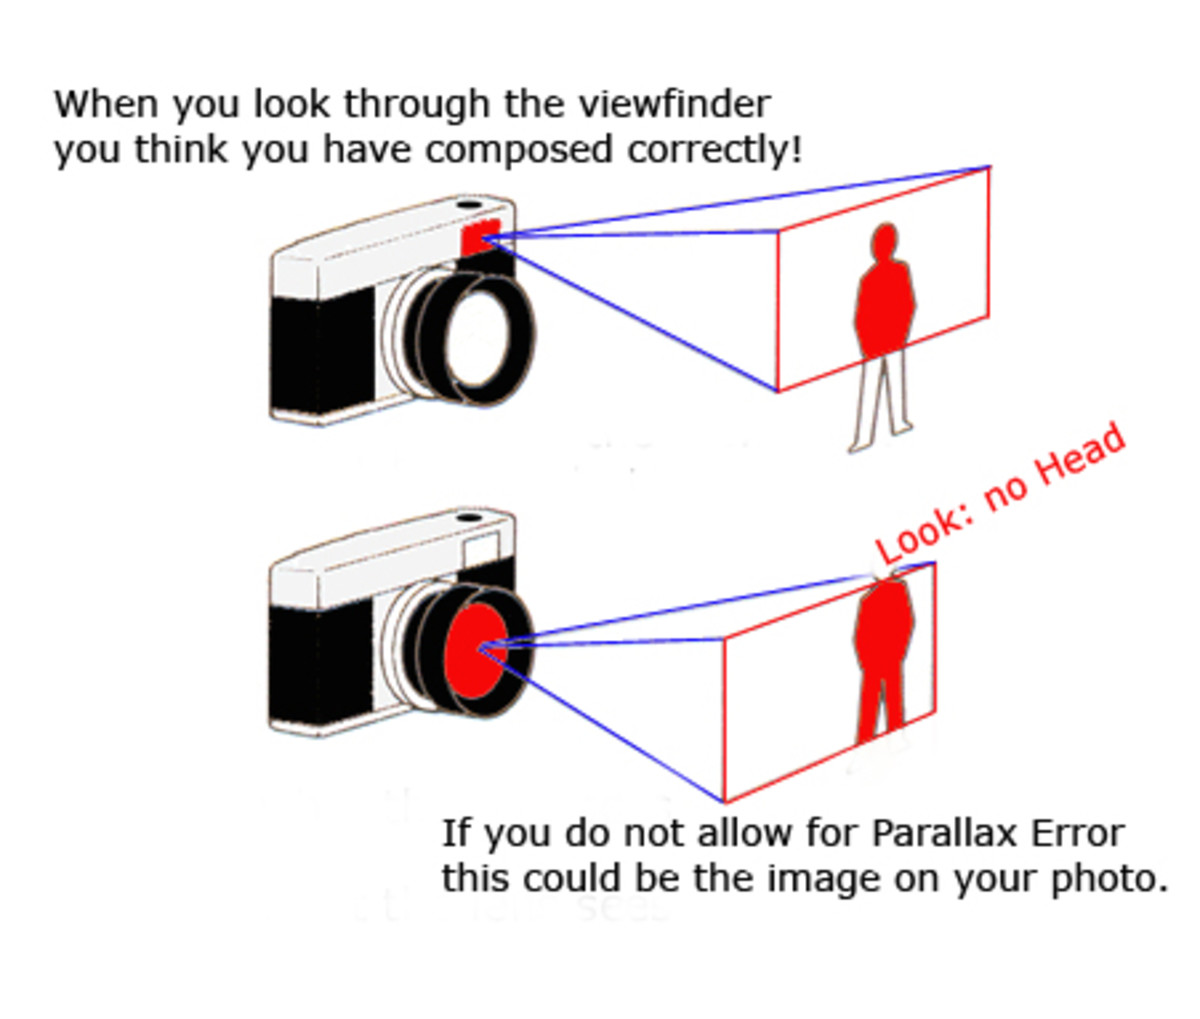 Parallax error: How to lose your head